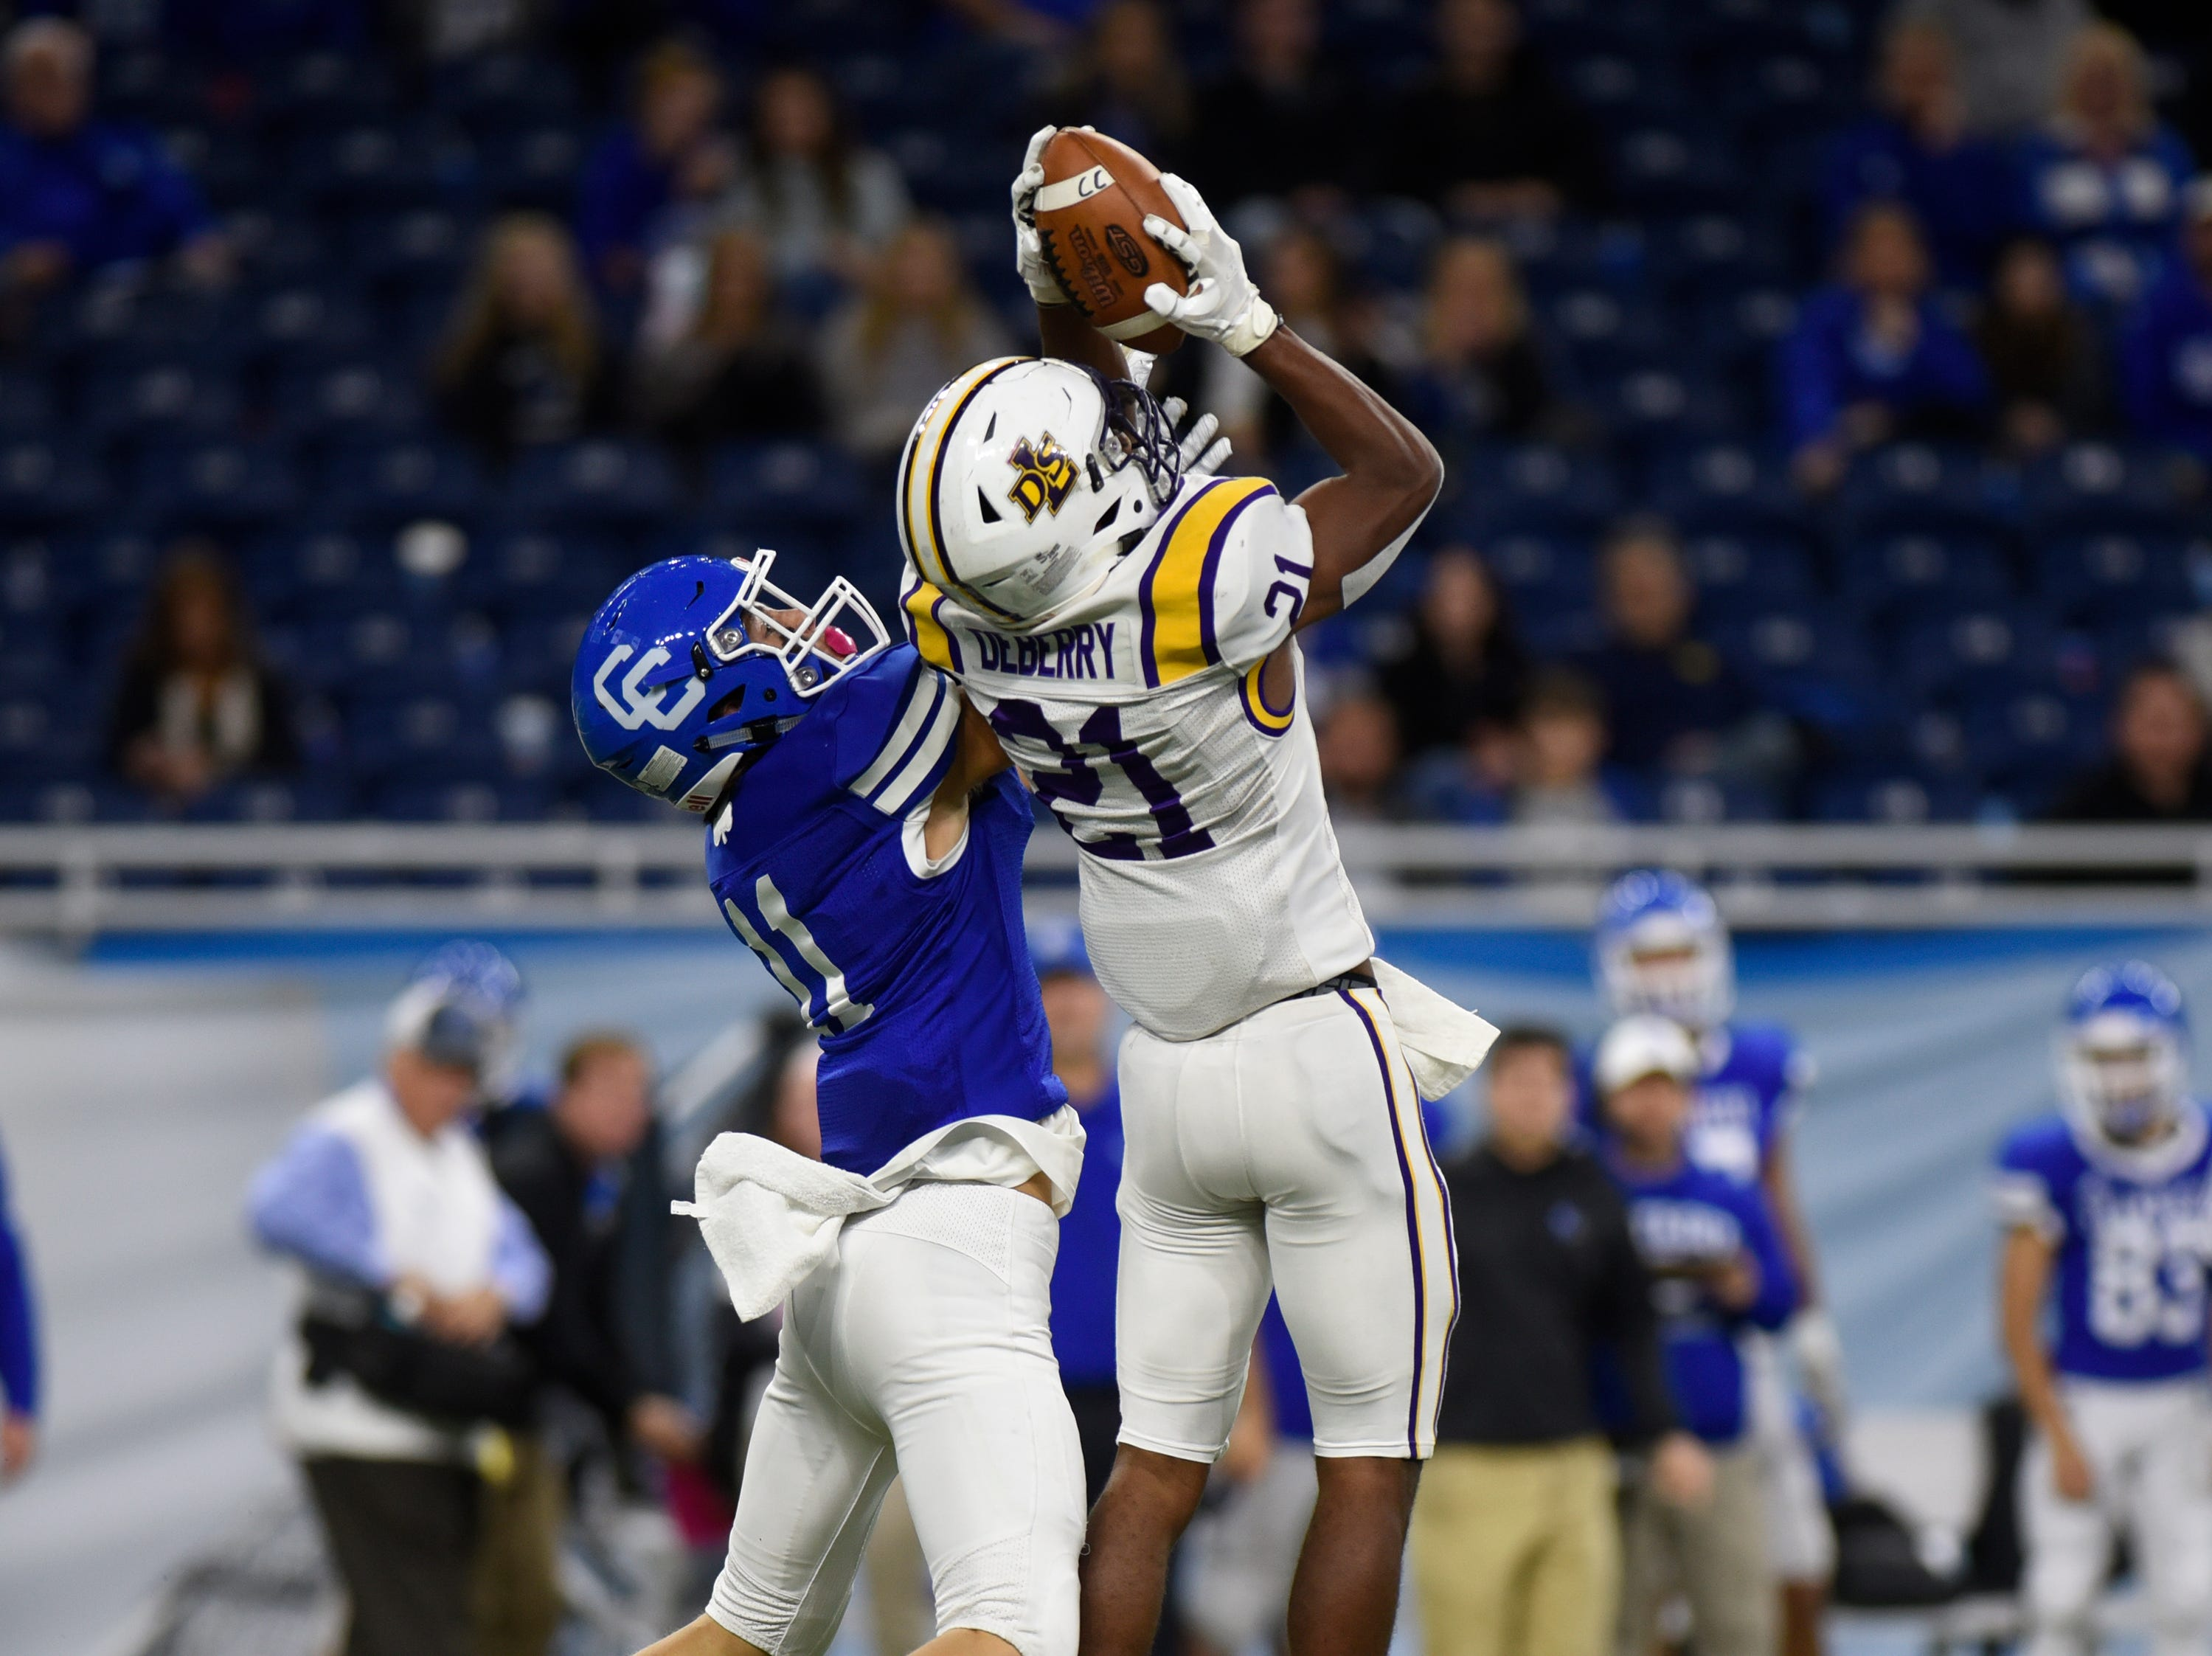 Warren De La Salle's Joshua DeBerry (21) intercepts a pas intended for Detroit Catholic Central WR/DB Nate Anderson (11) during Catholic League Prep Bowl AB Division championship game at Ford Field Oct. 20, 2018.